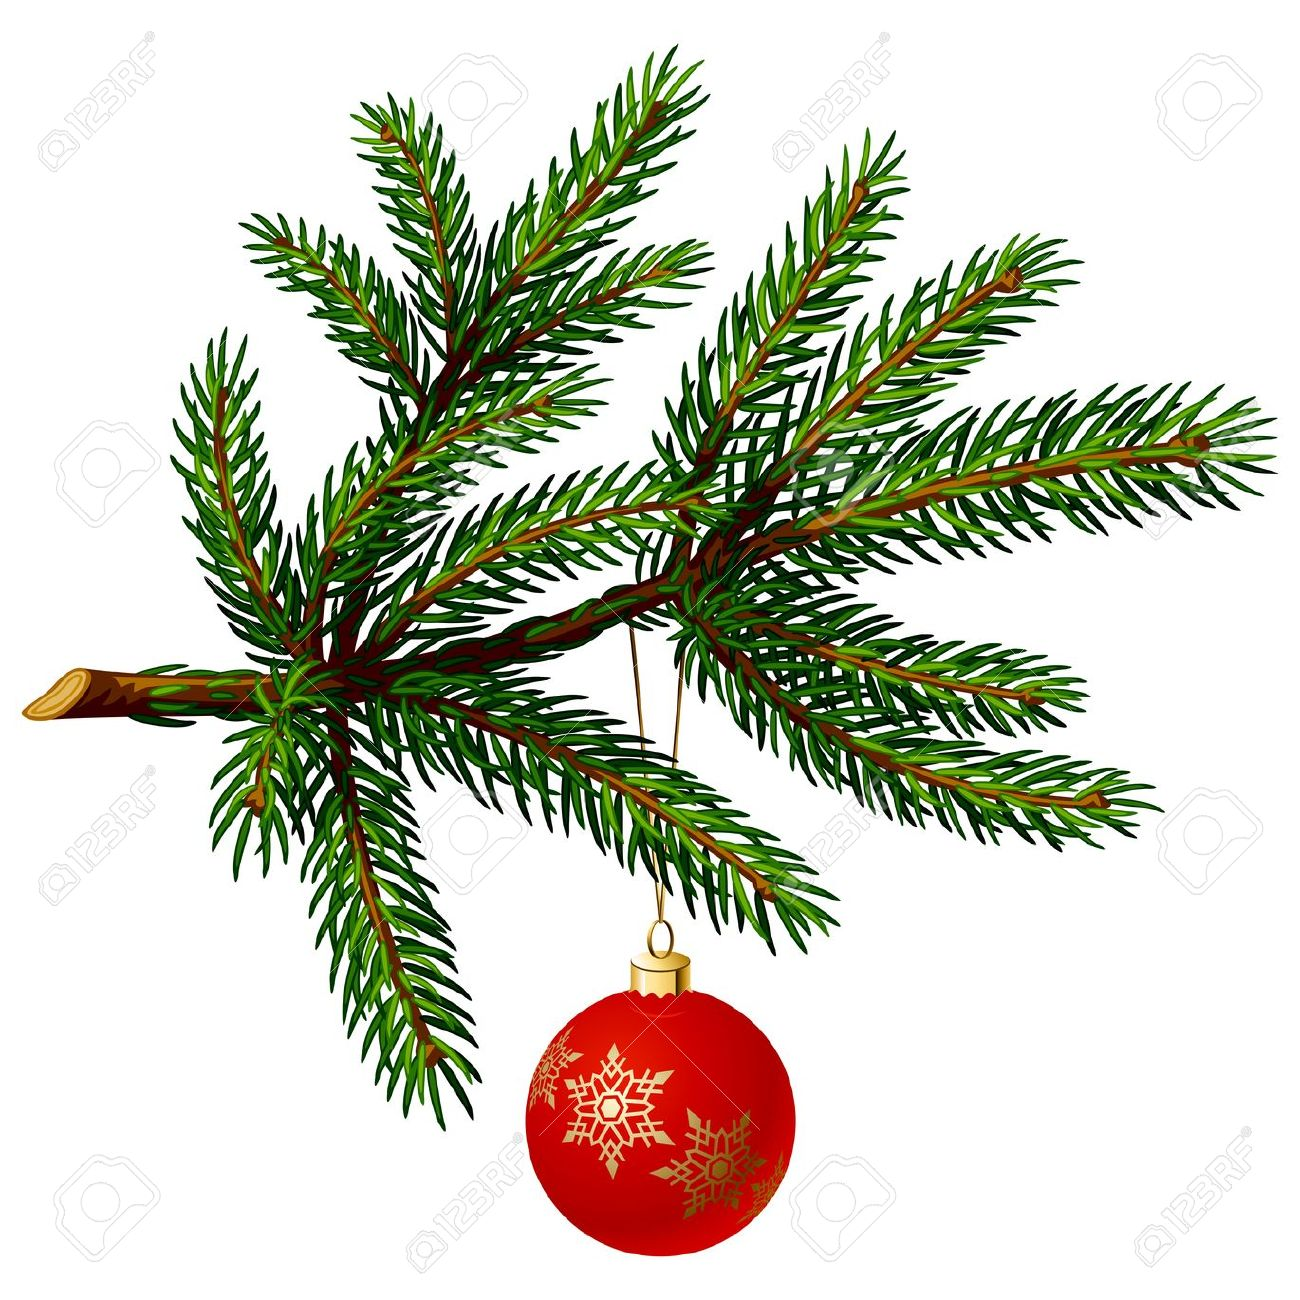 Evergreen boughs clipart - Clipground